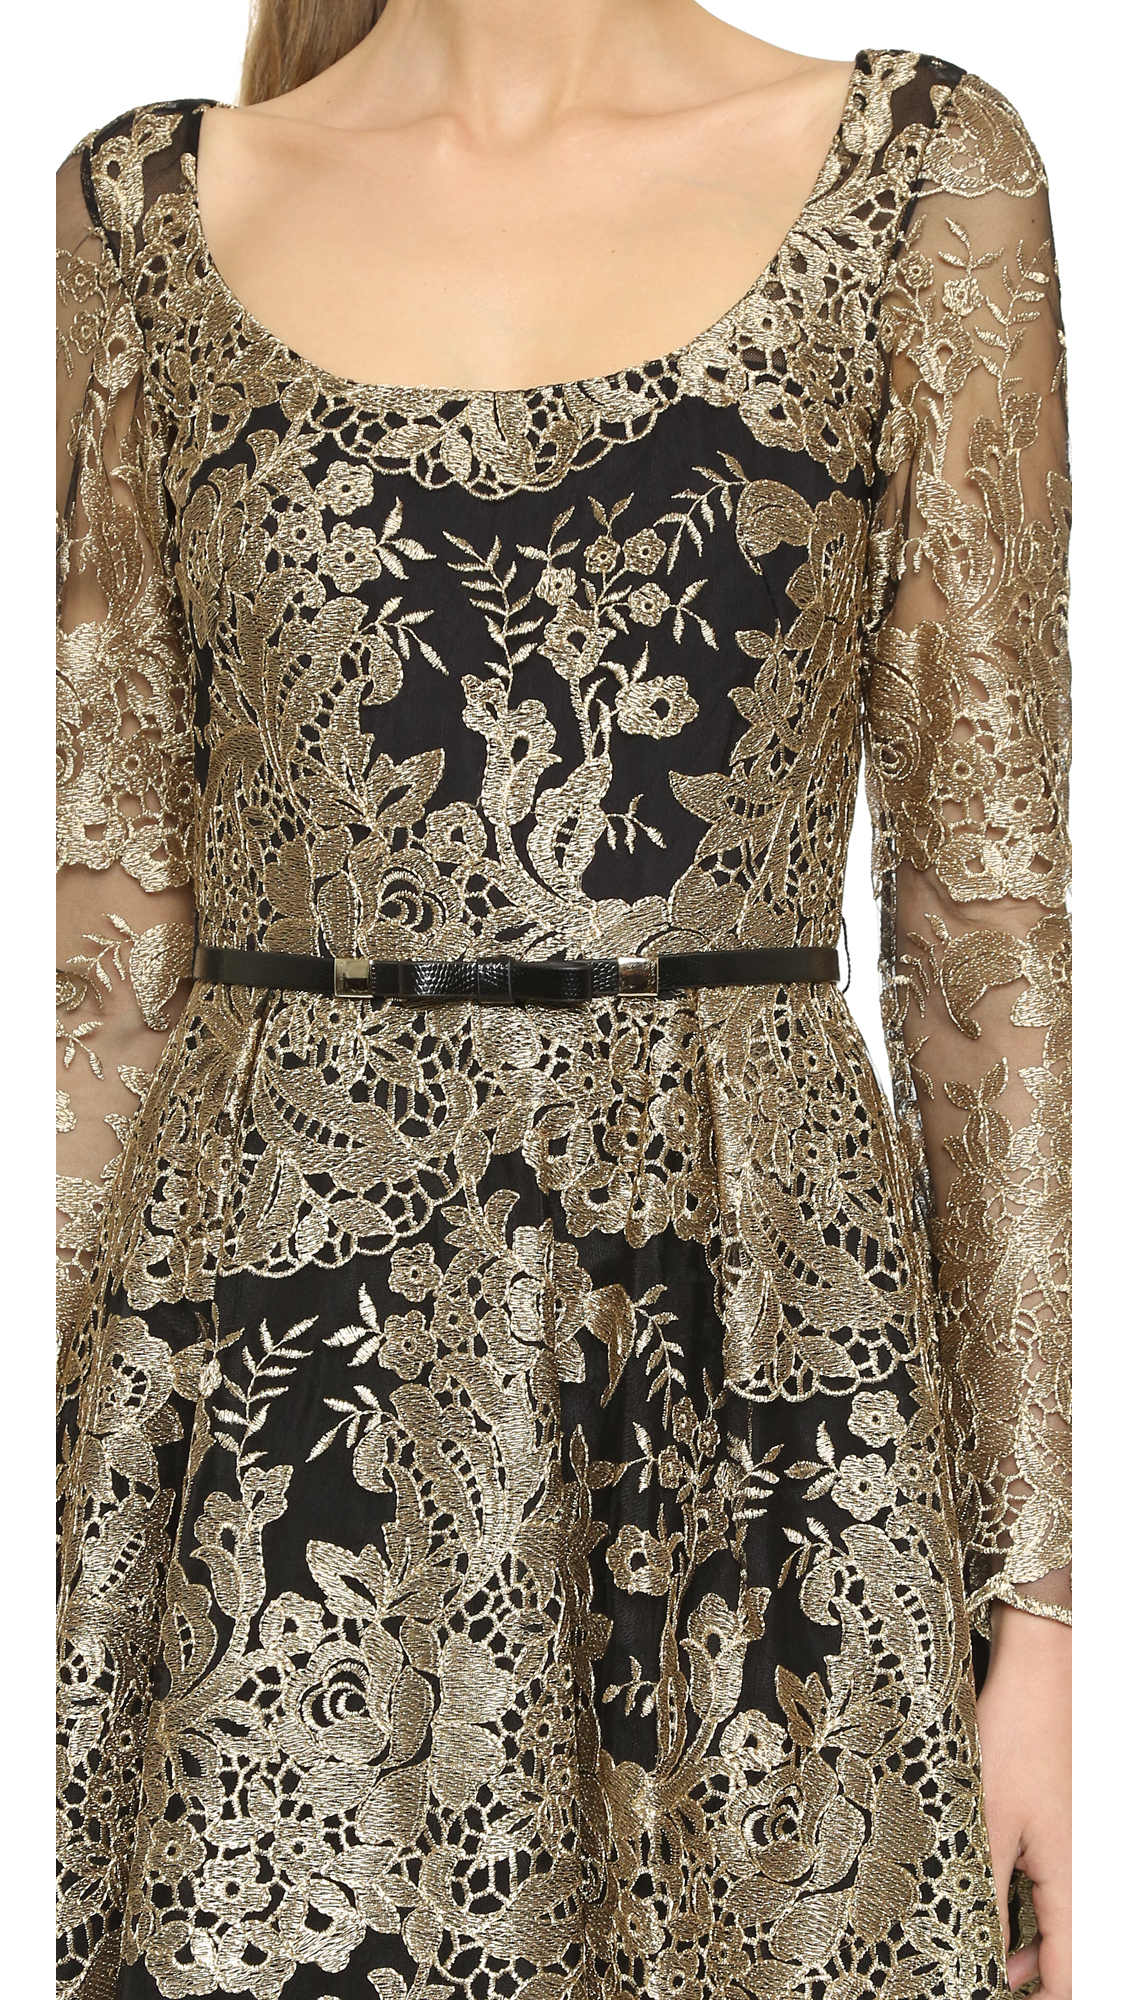 f0f7ab82471a2 Marchesa notte Long Sleeve Lace Dress - Black/gold in Black - Lyst